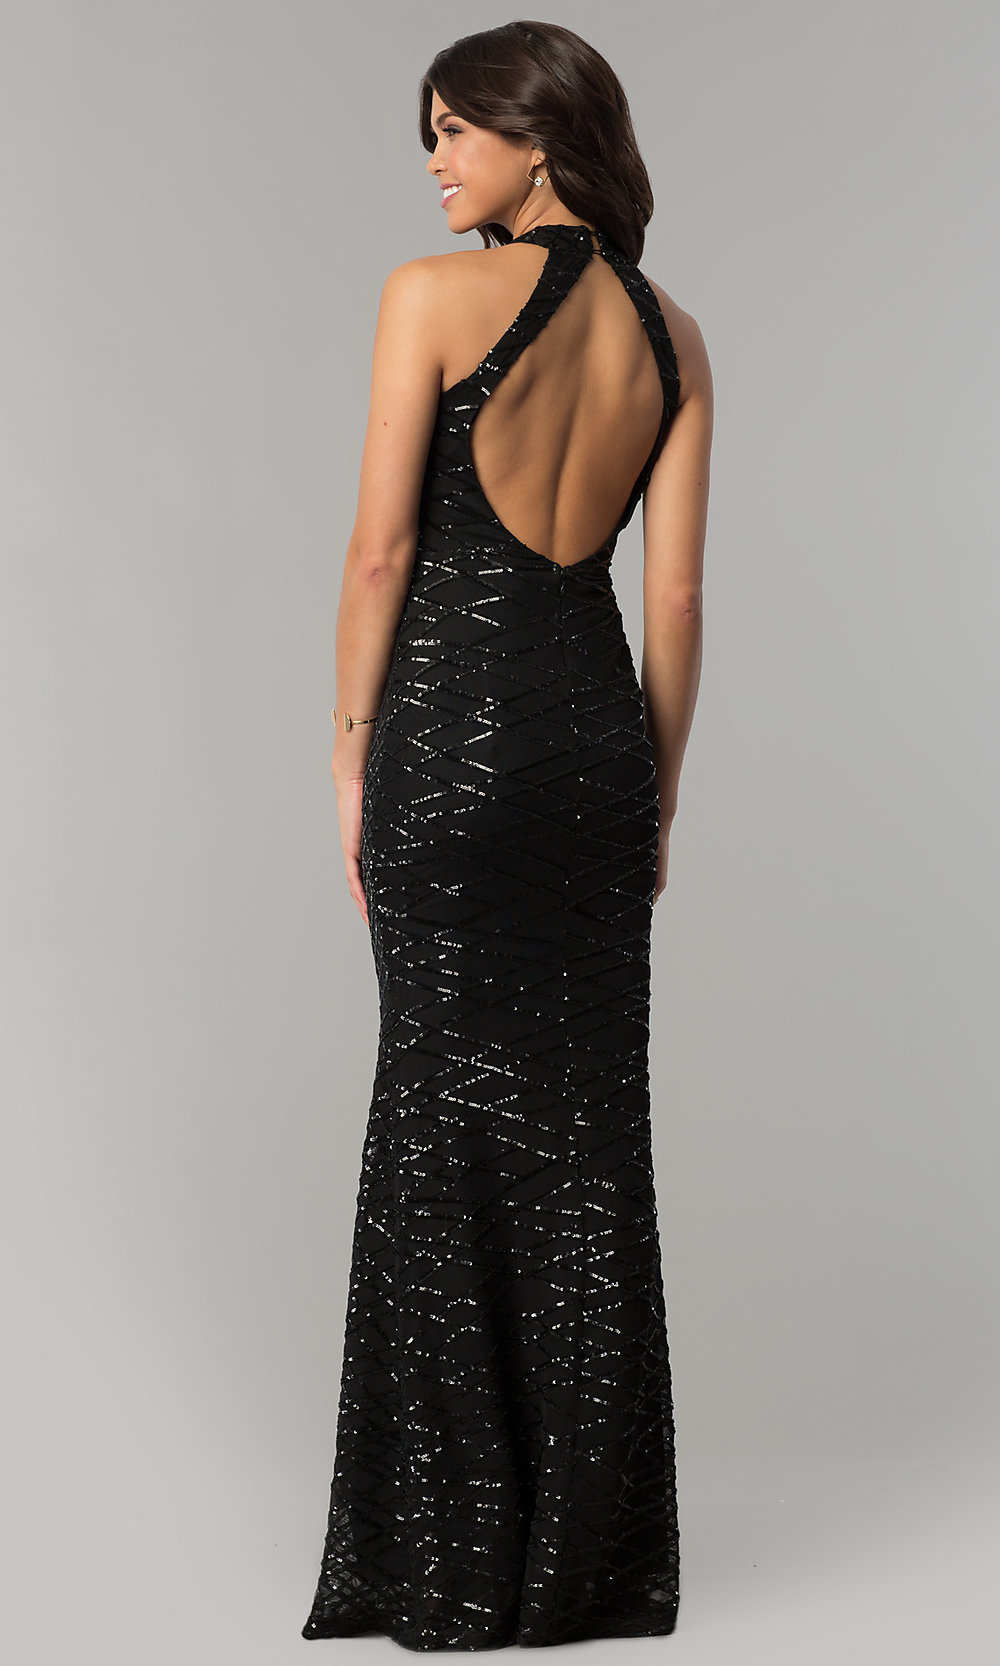 Cut Out Black Sequin Long Formal Dress Promgirl